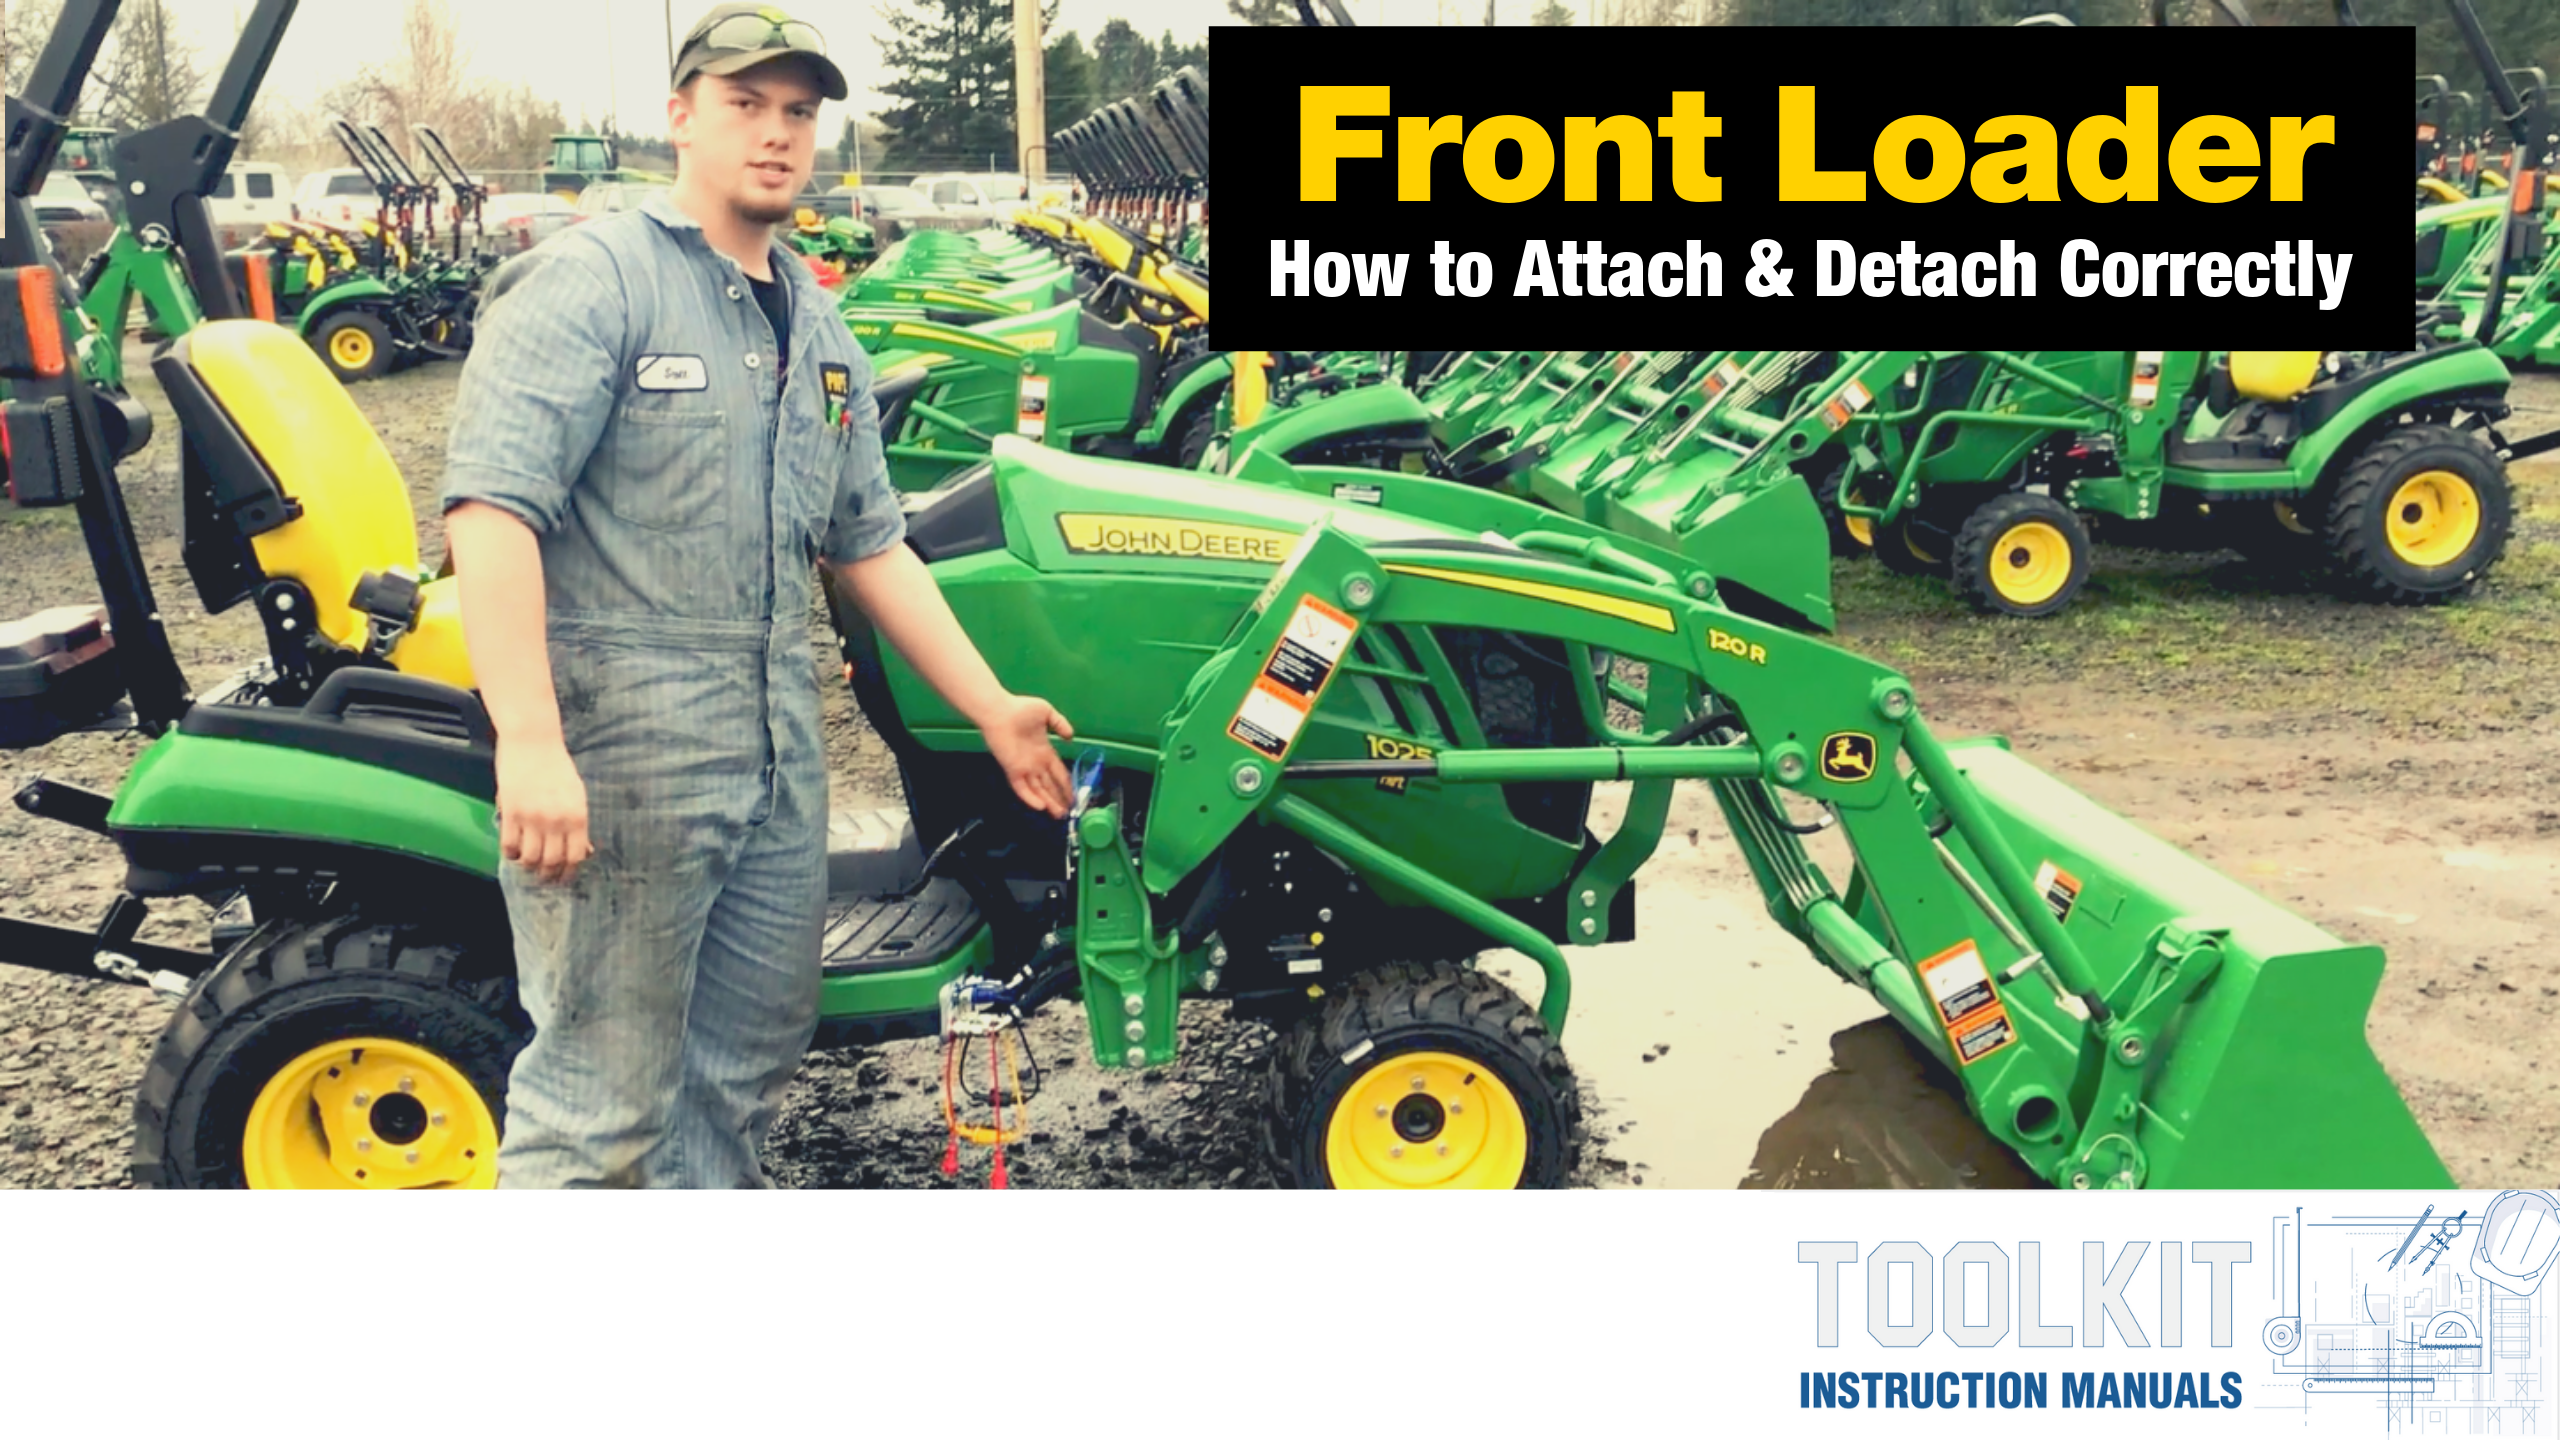 Front Loader Attach and Detach